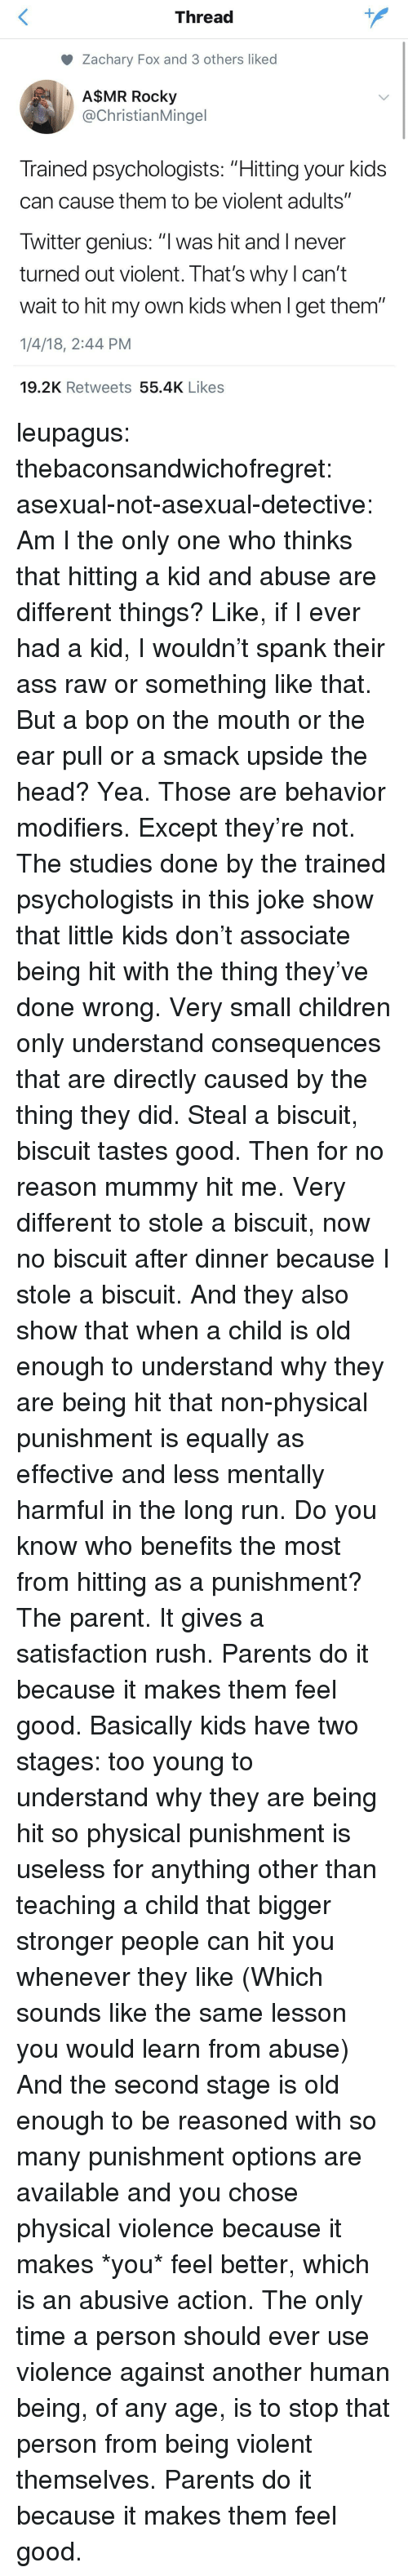 """Asexual: Thread  Zachary Fox and 3 others liked  A$MR Rocky  @ChristianMingel  Trained psychologists: """"Hitting your kids  can cause them to be violent adults""""  Twitter genius: """"l was hit and I never  turned out violent. That's why l can't  wait to hit my own kids when l get them""""  1/4/18, 2:44 PM  19.2K Retweets 55.4K Likes leupagus: thebaconsandwichofregret:  asexual-not-asexual-detective:  Am I the only one who thinks that hitting a kid and abuse are different things? Like, if I ever had a kid, I wouldn't spank their ass raw or something like that. But a bop on the mouth or the ear pull or a smack upside the head? Yea. Those are behavior modifiers.   Except they're not.  The studies done by the trained psychologists in this joke show that little kids don't associate being hit with the thing they've done wrong. Very small children only understand consequences that are directly caused by the thing they did. Steal a biscuit, biscuit tastes good. Then for no reason mummy hit me. Very different to stole a biscuit, now no biscuit after dinner because I stole a biscuit. And they also show that when a child is old enough to understand why they are being hit that non-physical punishment is equally as effective and less mentally harmful in the long run.  Do you know who benefits the most from hitting as a punishment? The parent. It gives a satisfaction rush. Parents do it because it makes them feel good.  Basically kids have two stages: too young to understand why they are being hit so physical punishment is useless for anything other than teaching a child that bigger stronger people can hit you whenever they like (Which sounds like the same lesson you would learn from abuse) And the second stage is old enough to be reasoned with so many punishment options are available and you chose physical violence because it makes *you* feel better, which is an abusive action.  The only time a person should ever use violence against another human being, of any age, is to stop that perso"""